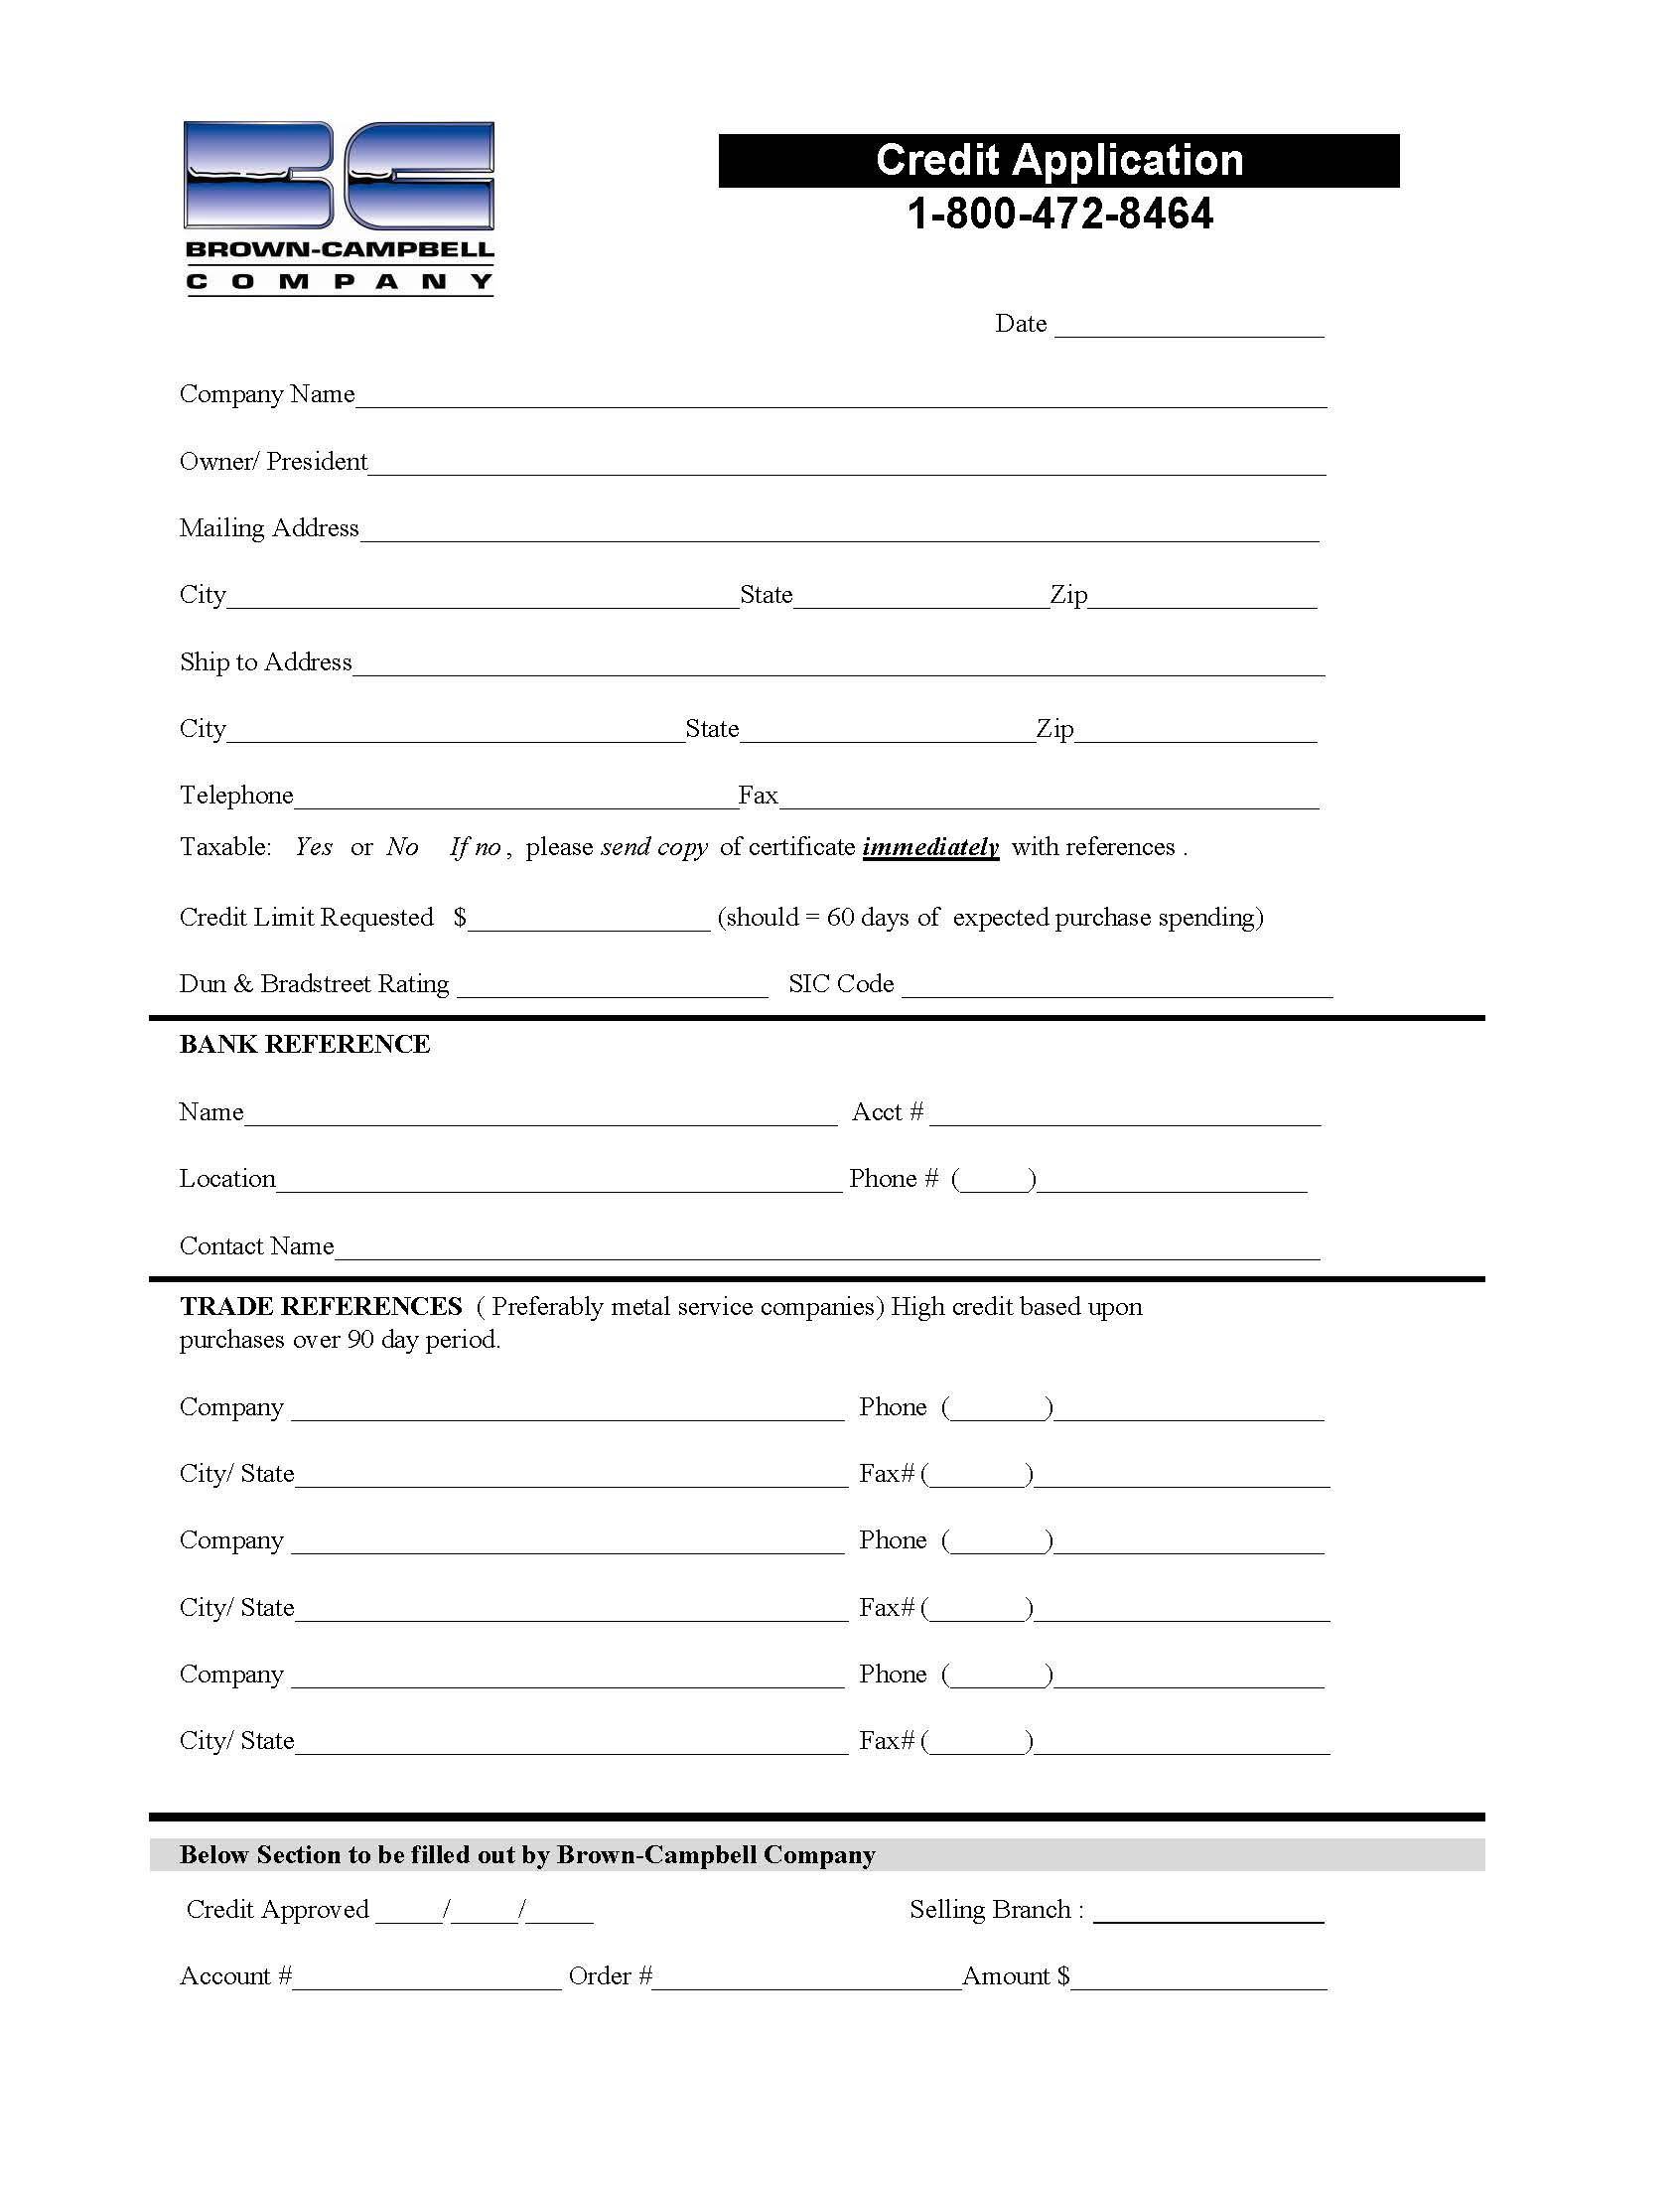 brown campbell credit application